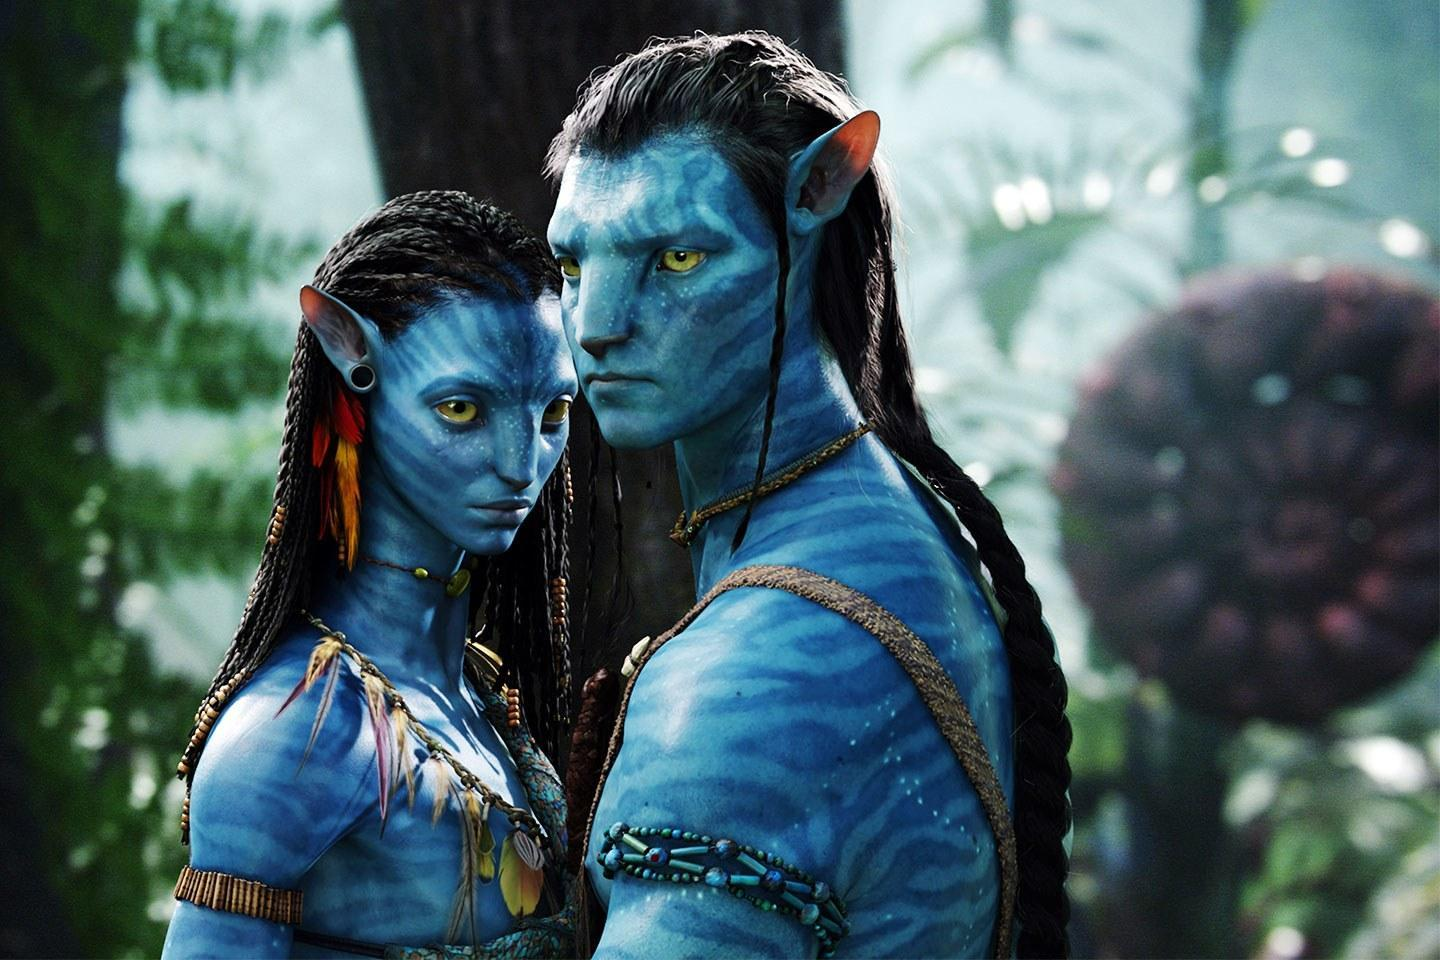 avatar 2 to be shown in glasses-free 3d | the independent